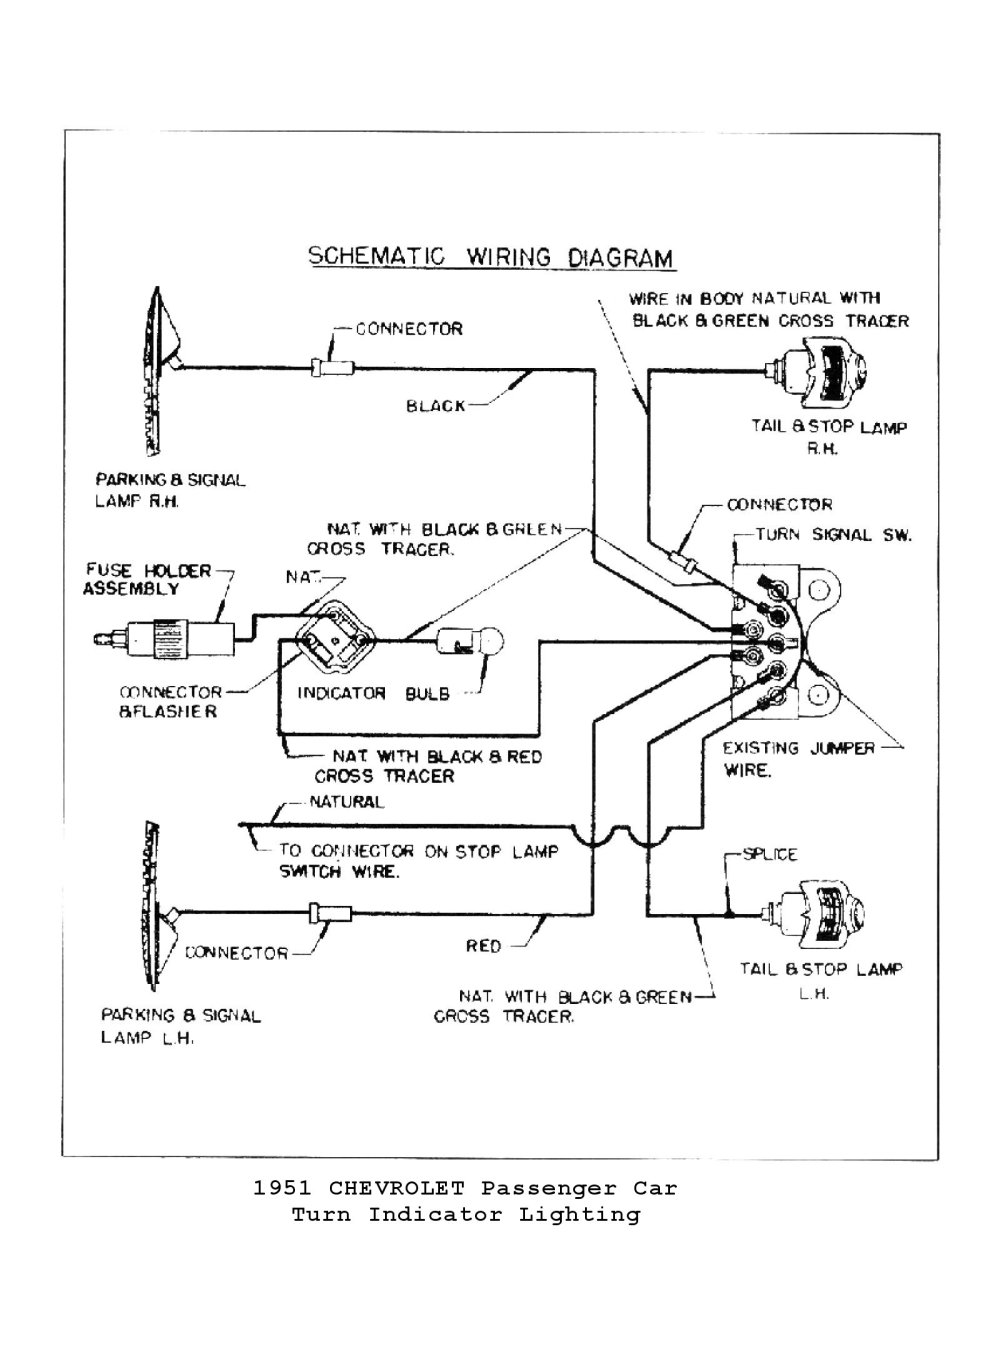 medium resolution of 1957 chevy headlight switch diagram wiring diagram blogs 1975 trans am wiring diagram 1950 chevy truck